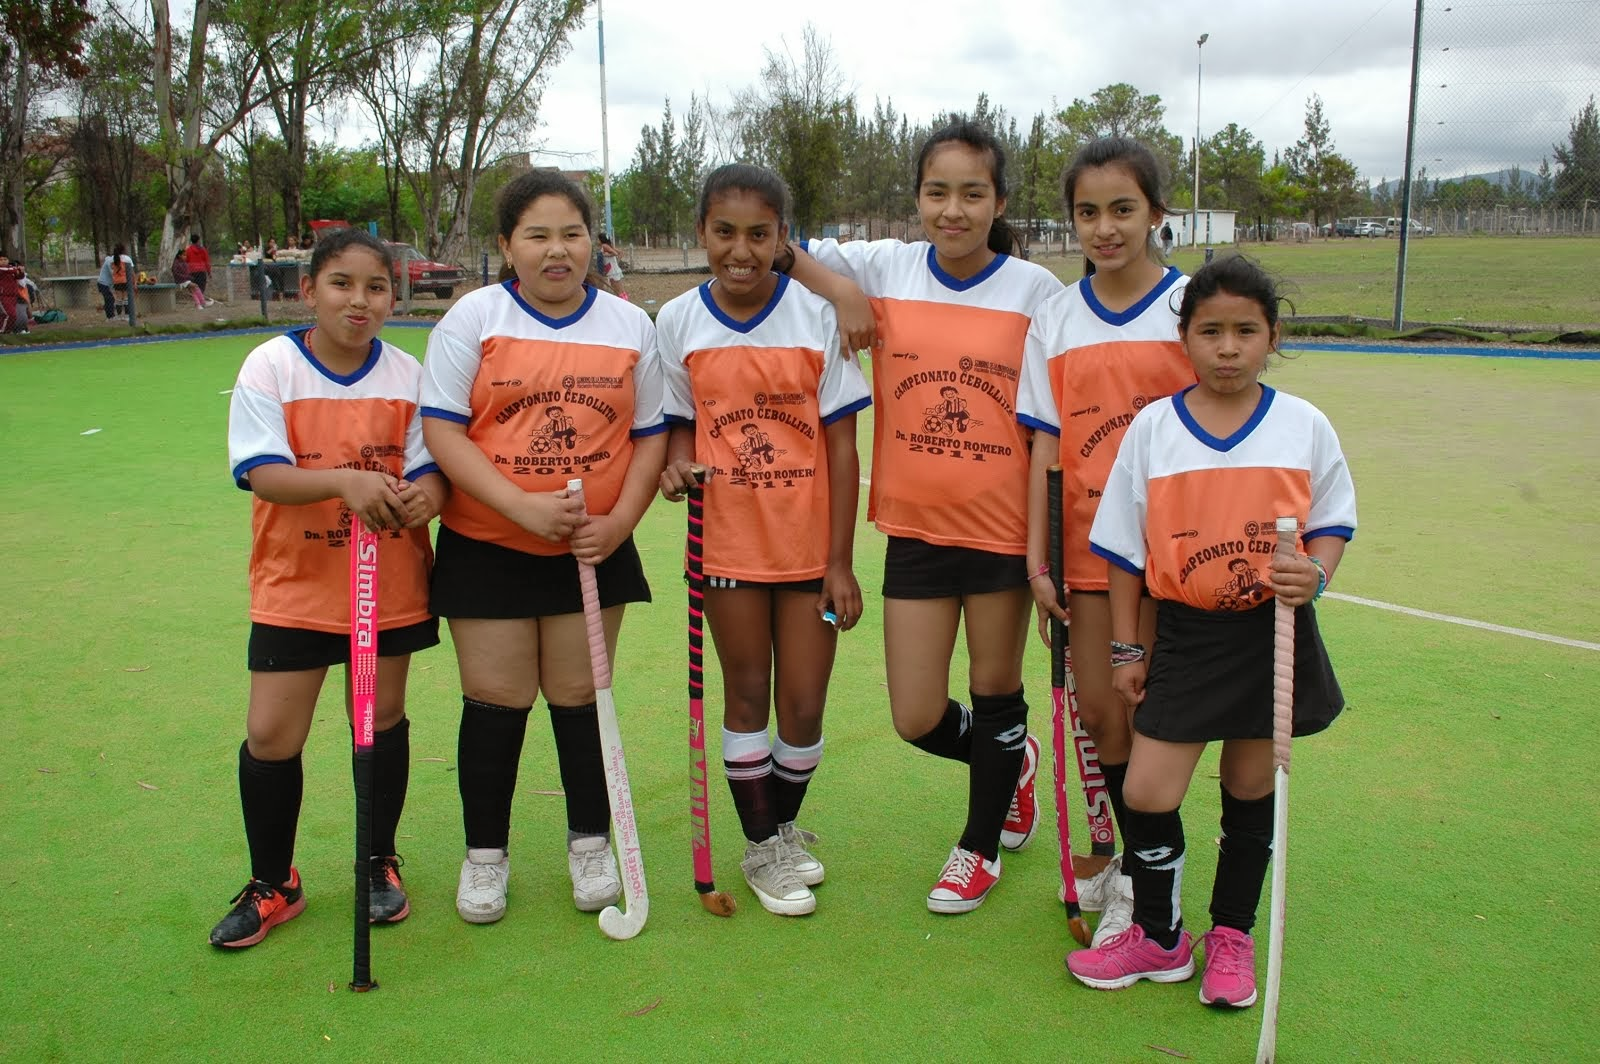 CERRILLOS HOCKEY